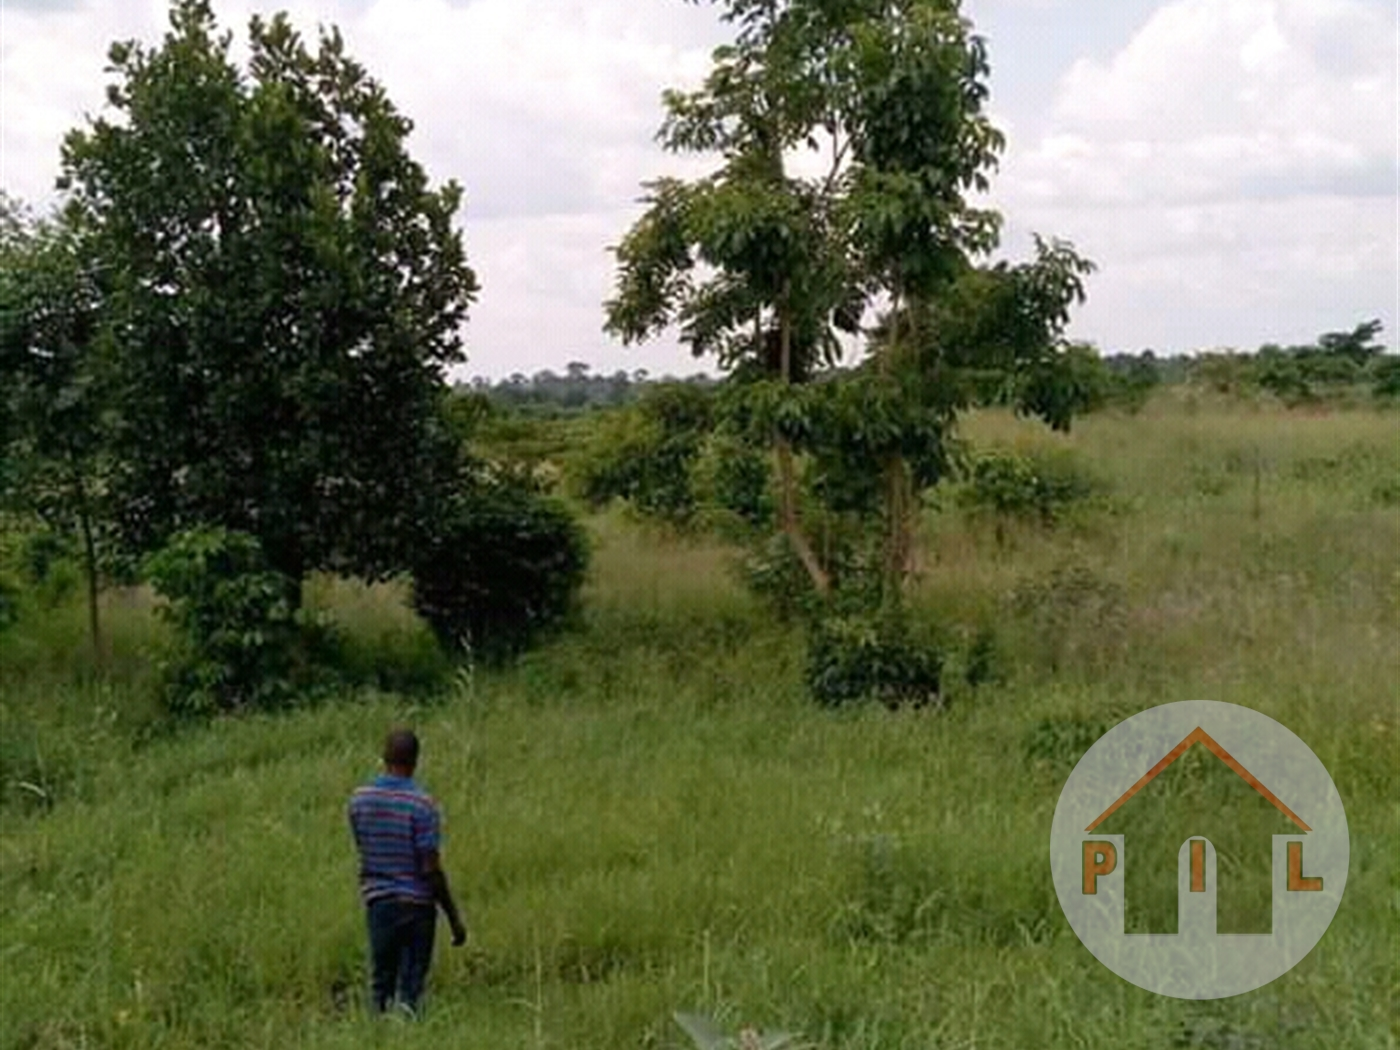 Multi Purpose Land for sale in Nkokonjeru Mukono